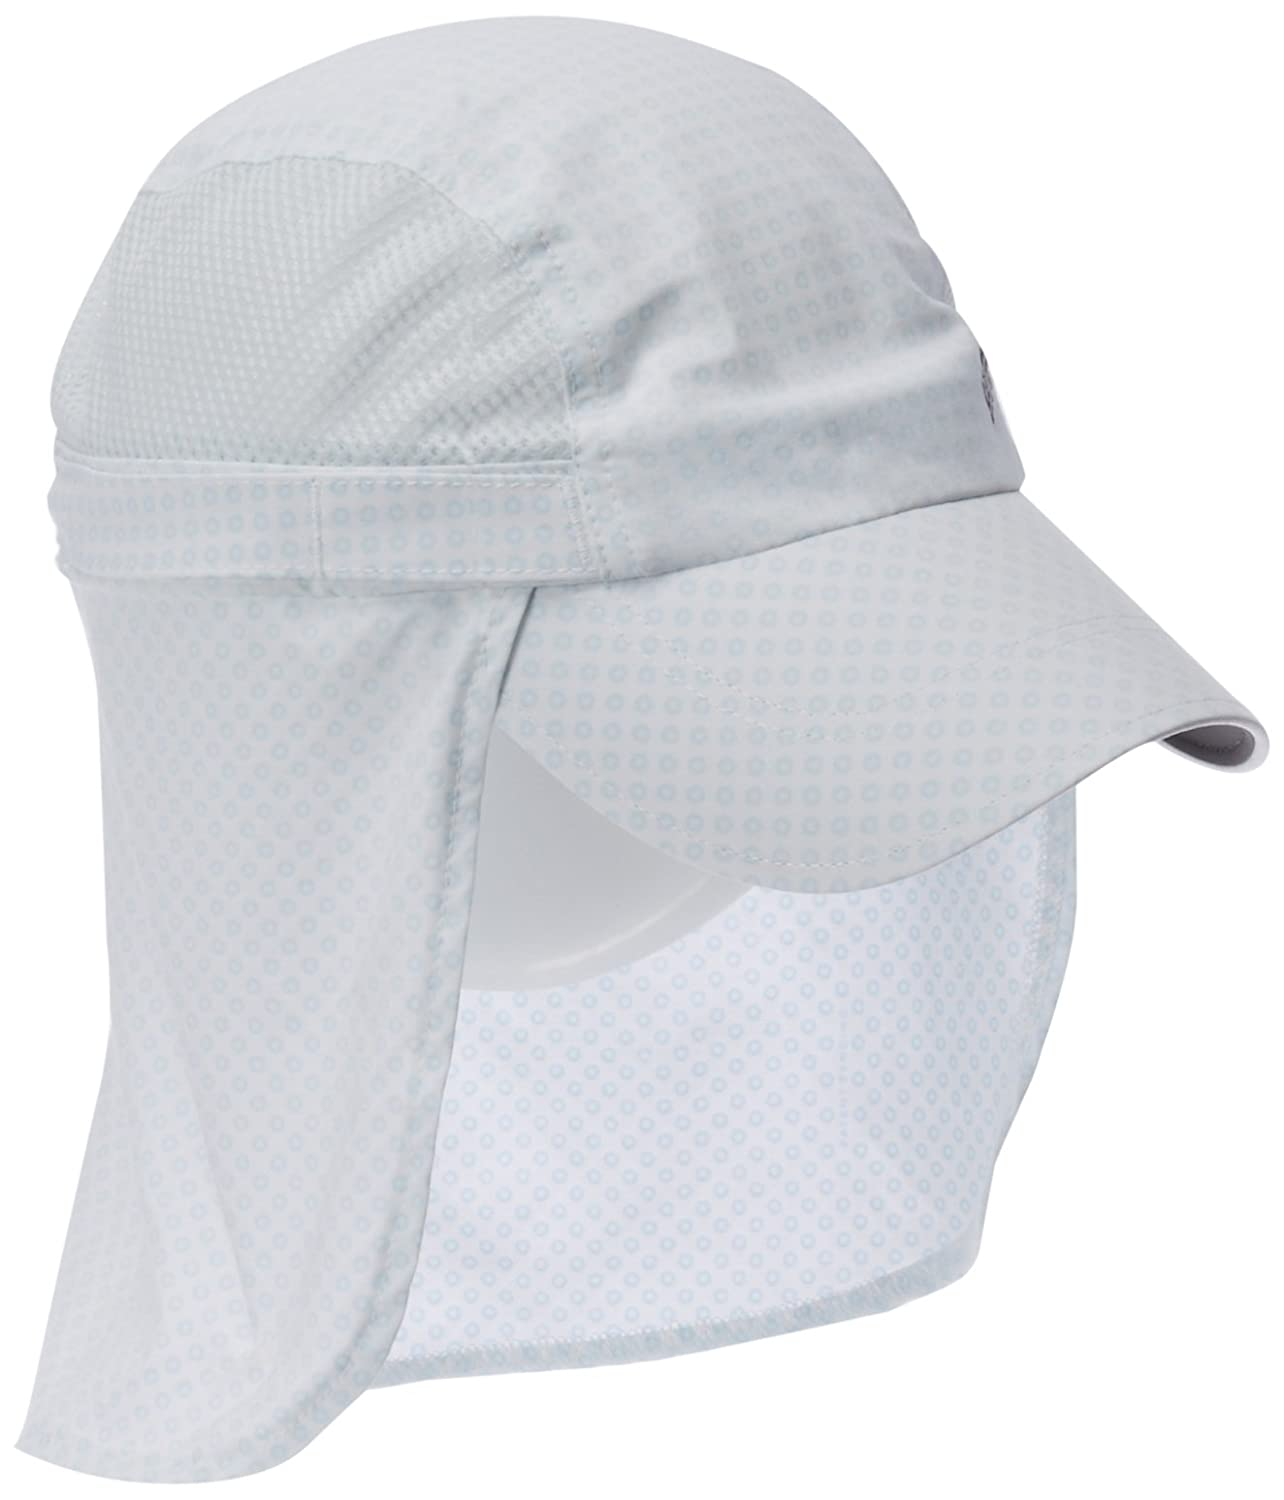 829b688cfad70 Columbia Men s Synthetic Hat (CU9500-160 Fossil One Size)  Amazon.in   Clothing   Accessories